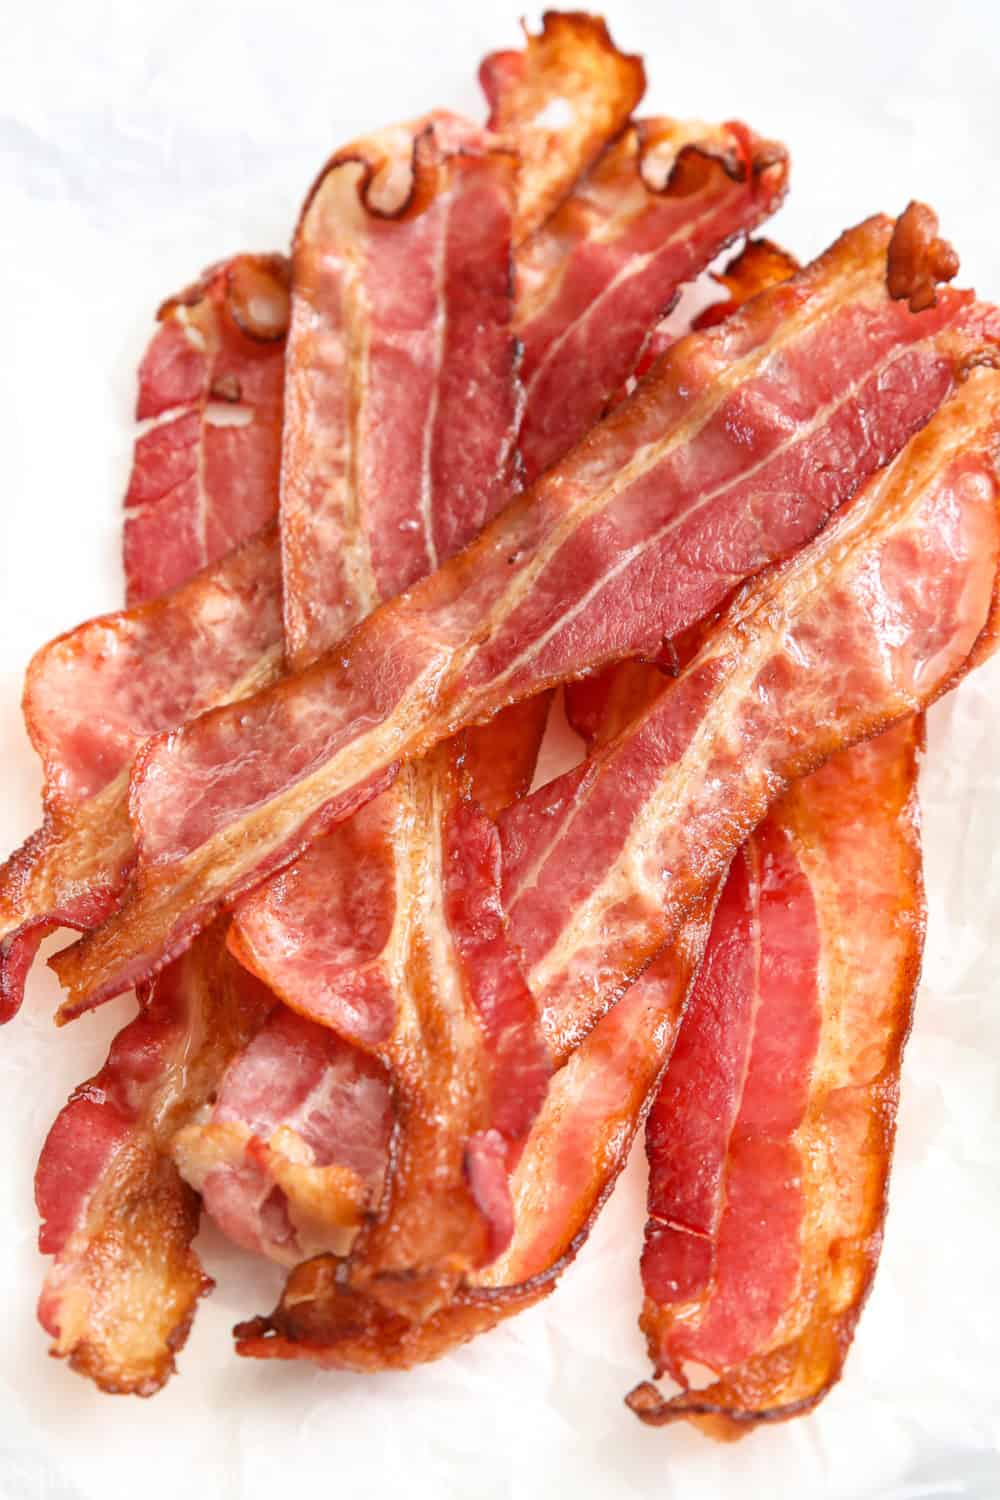 a pile of crispy bacon on a plate lined with paper towels